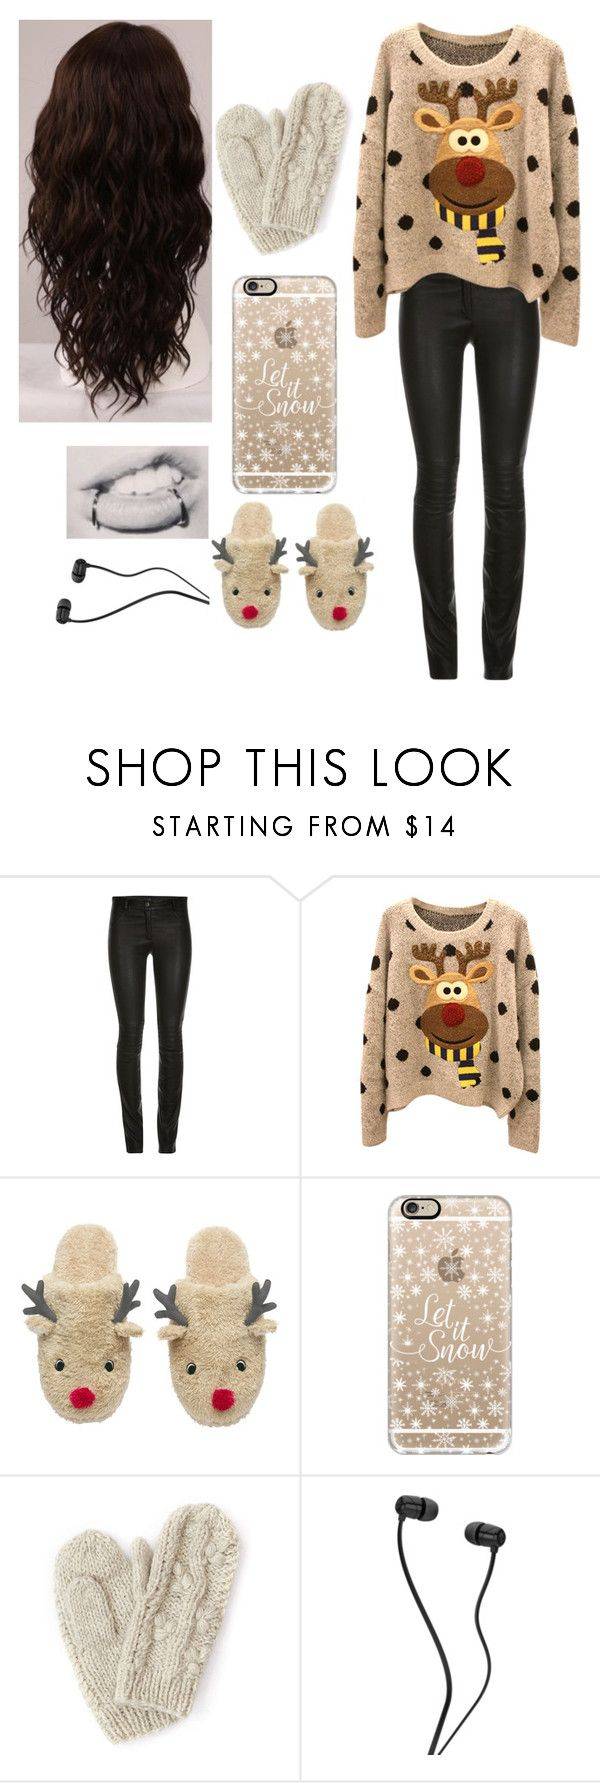 """Christmas Eve outfit"" by girlie-kendrick ❤ liked on Polyvore featuring Casetify, Bibico, WigYouUp, women's clothing, women's fashion, women, female, woman, misses and juniors"